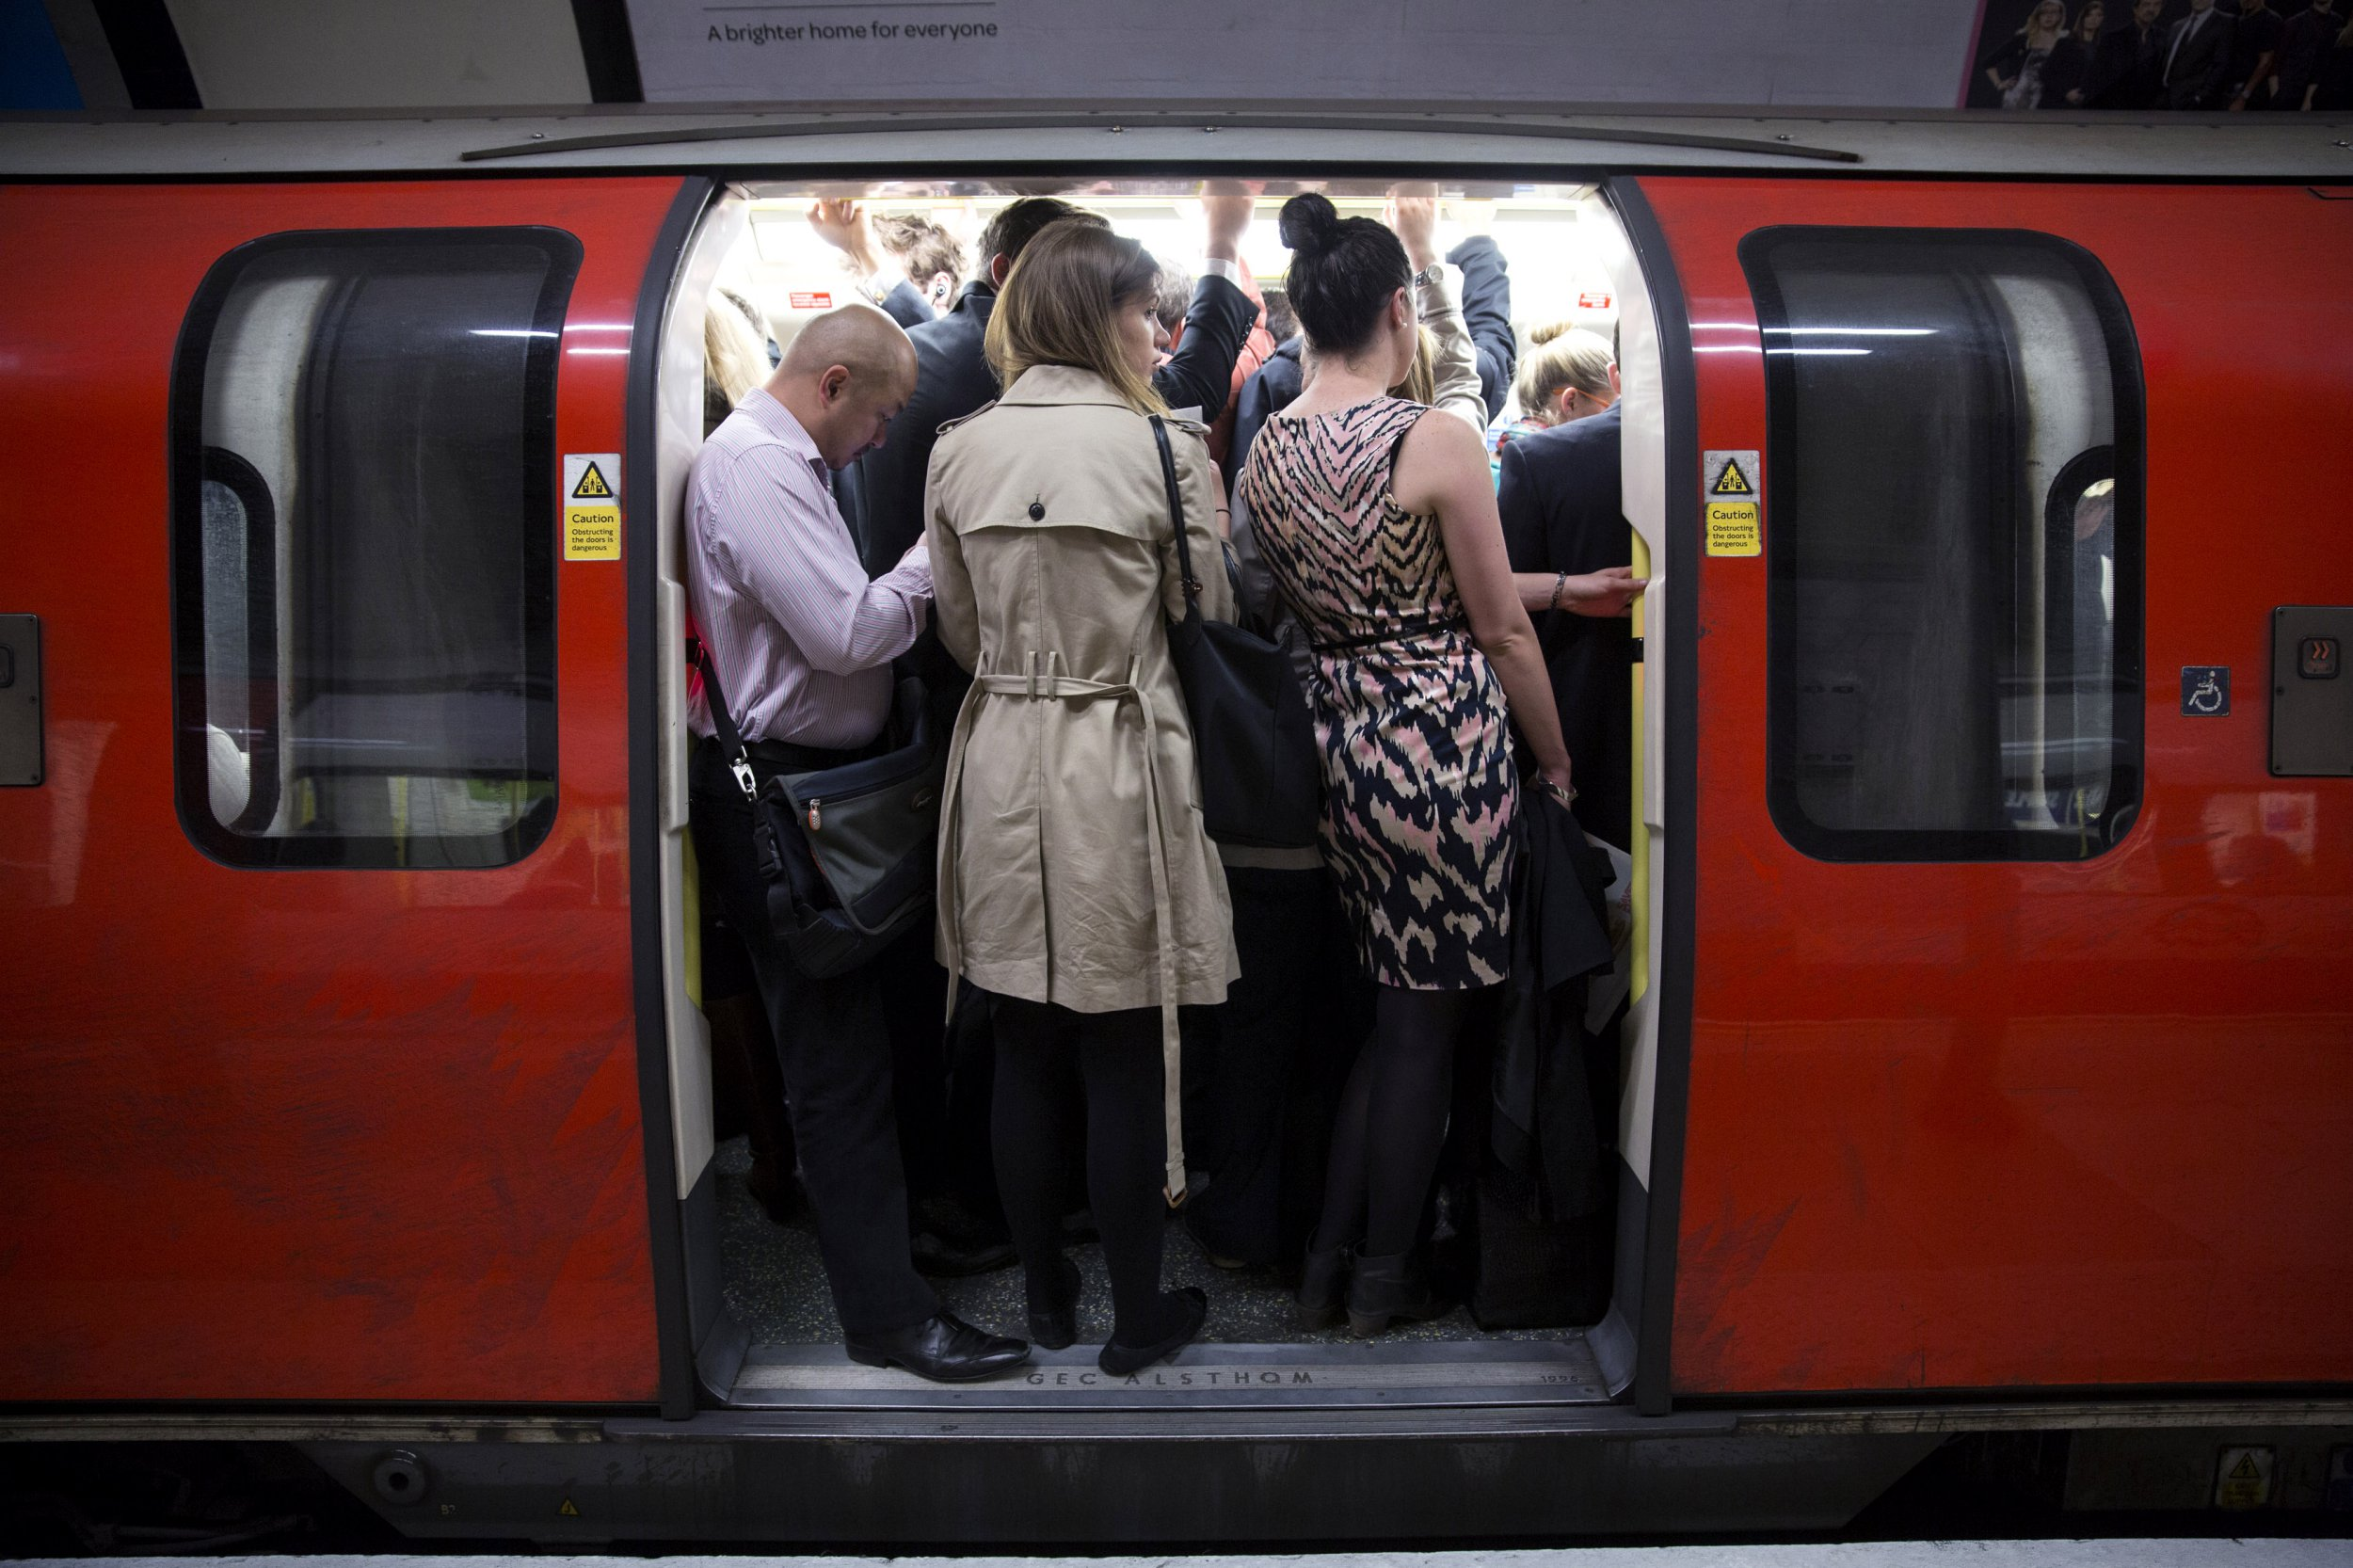 When will the London tube strikes finish and which lines are affected?